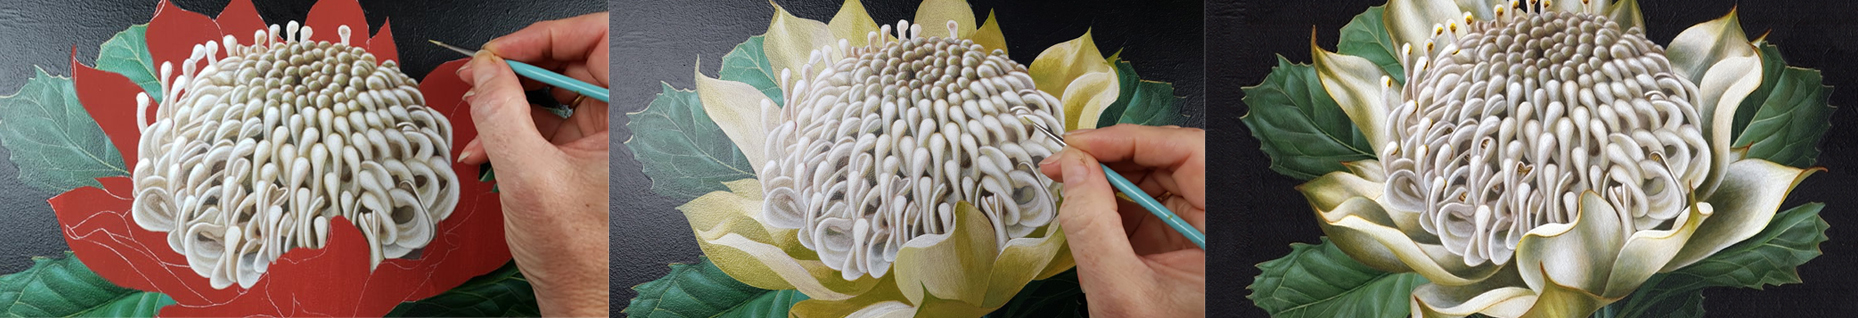 artist_White Waratah botanical illustration_Heidi Willis_Artist